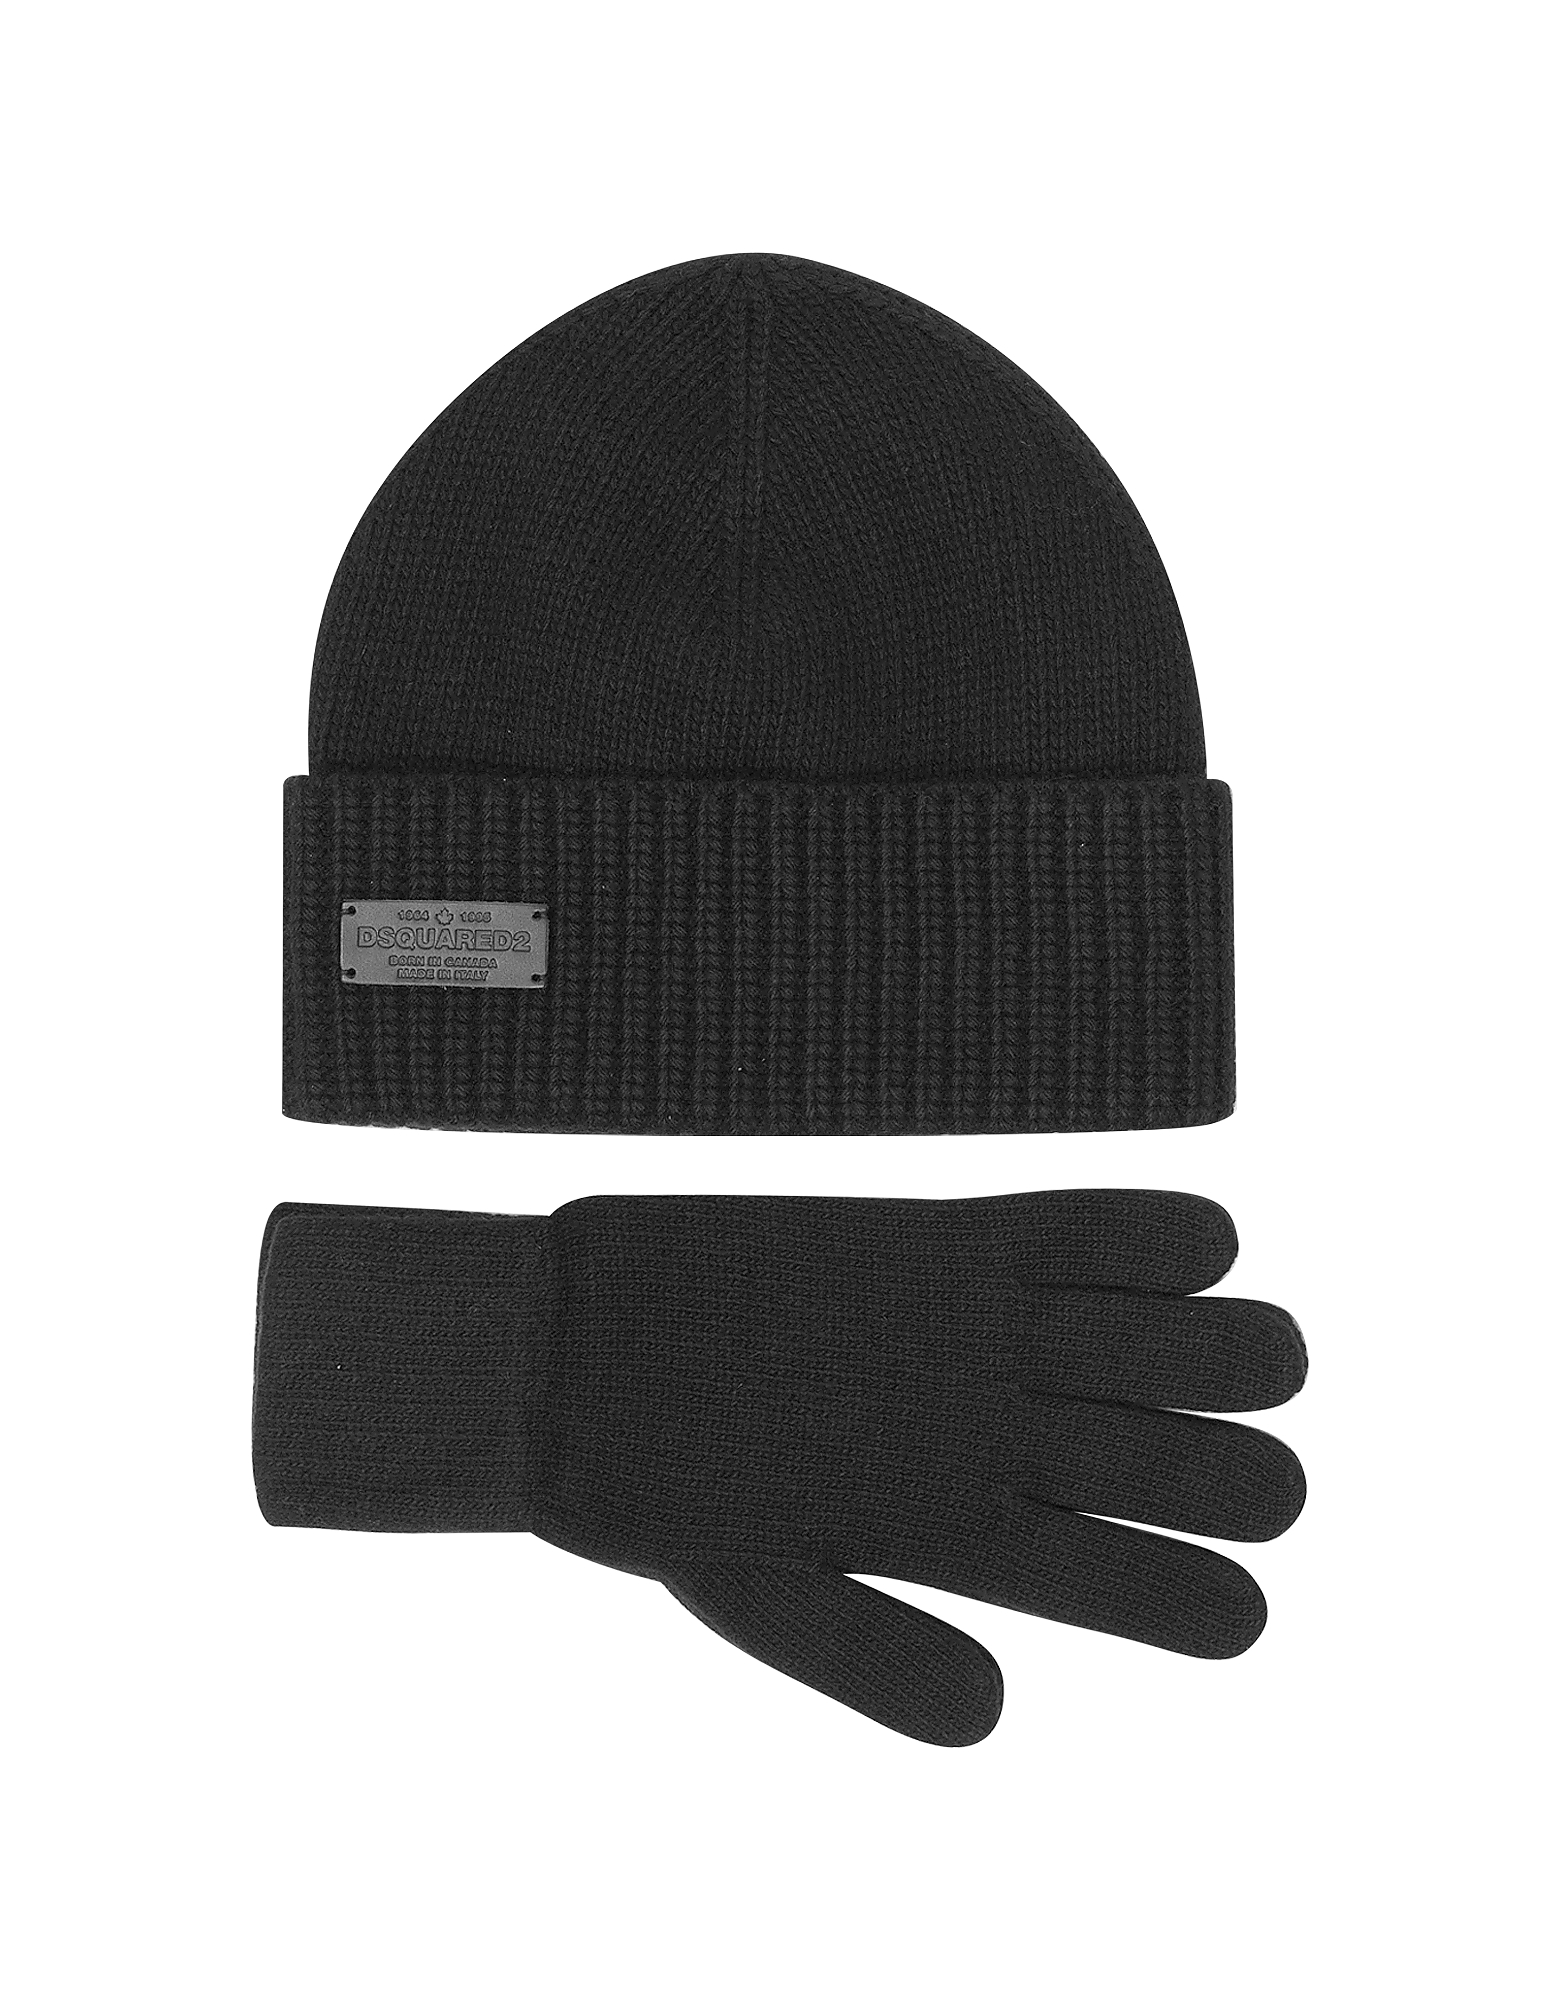 Black Wool and Cashmere Set of Gloves & Hat от Forzieri.com INT